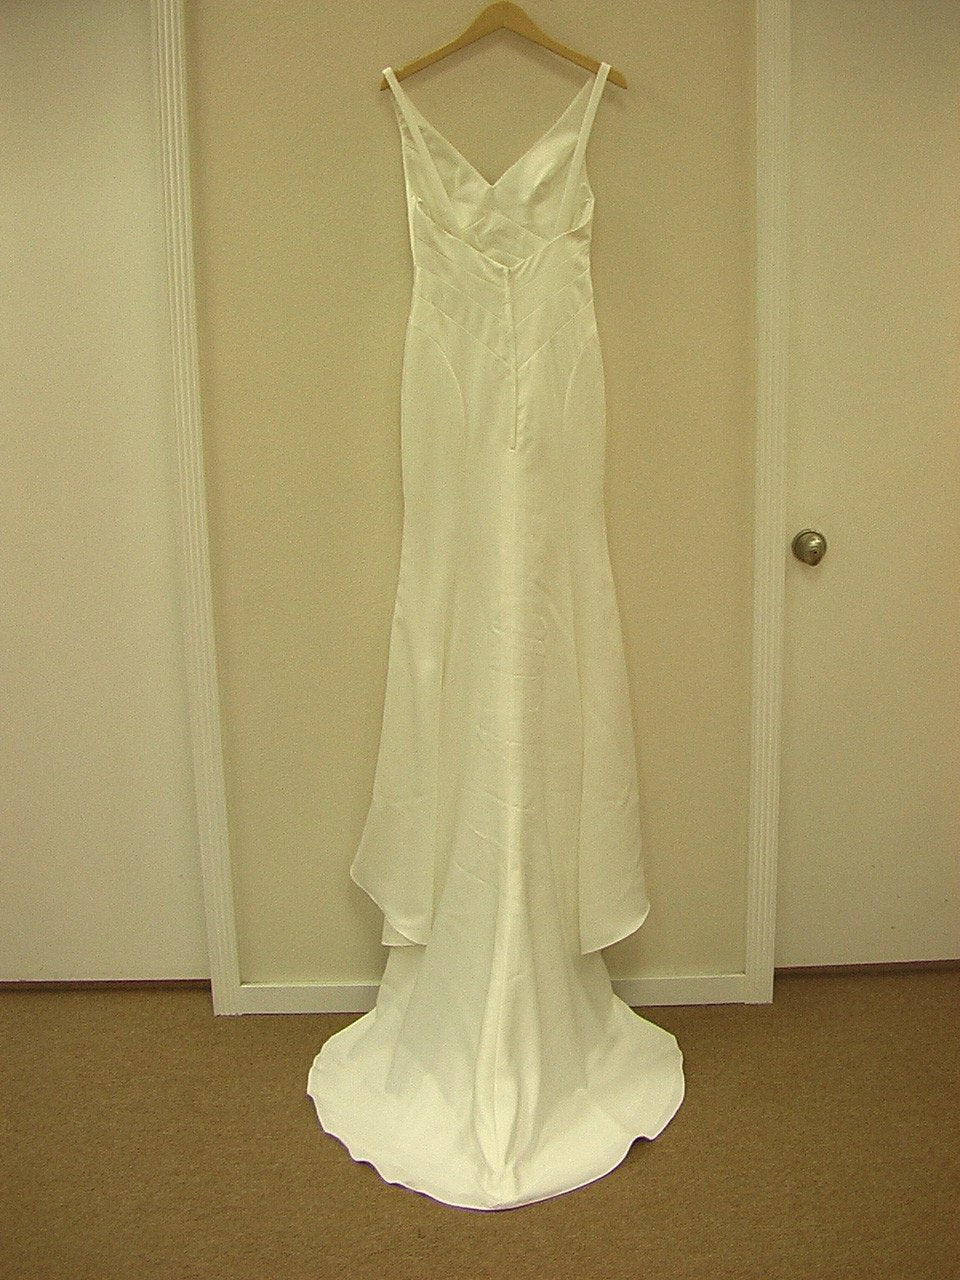 Allure 839 Ivory size 6 In Stock Wedding Dress - Tom's Bridal